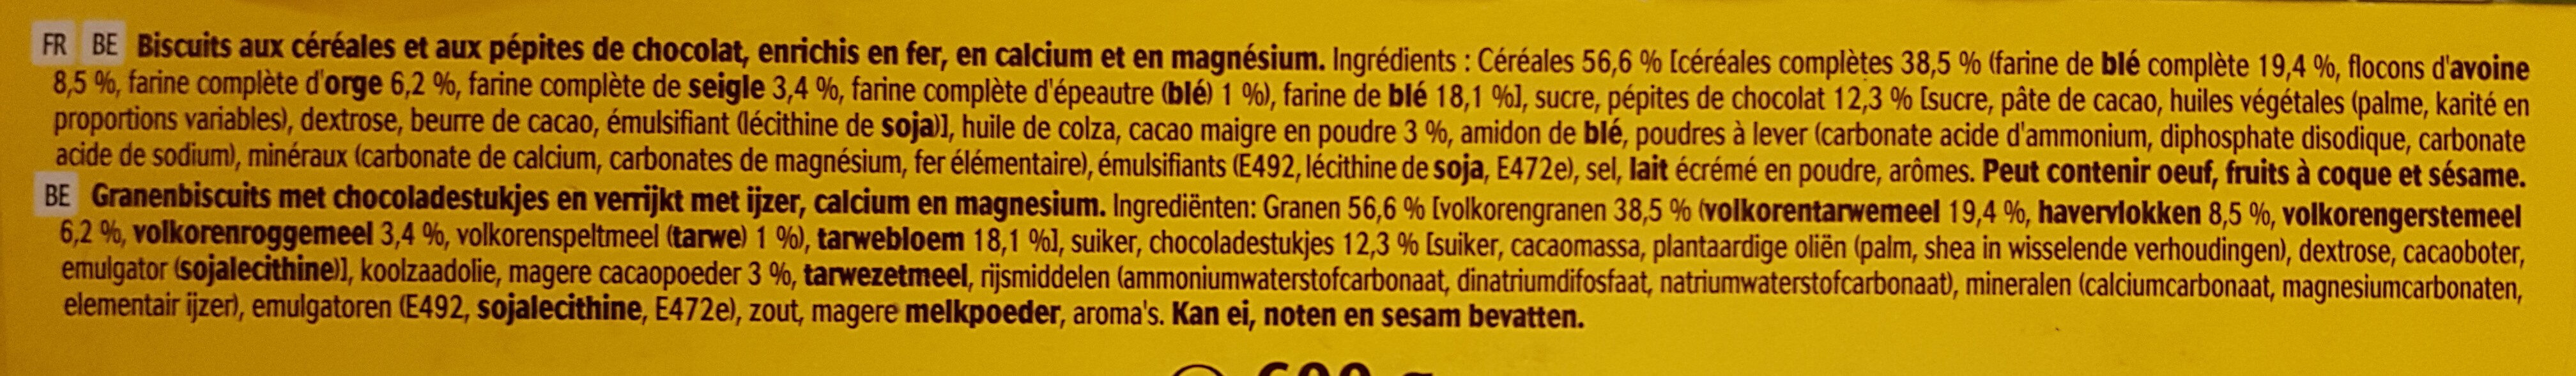 belvita - Ingredients - fr